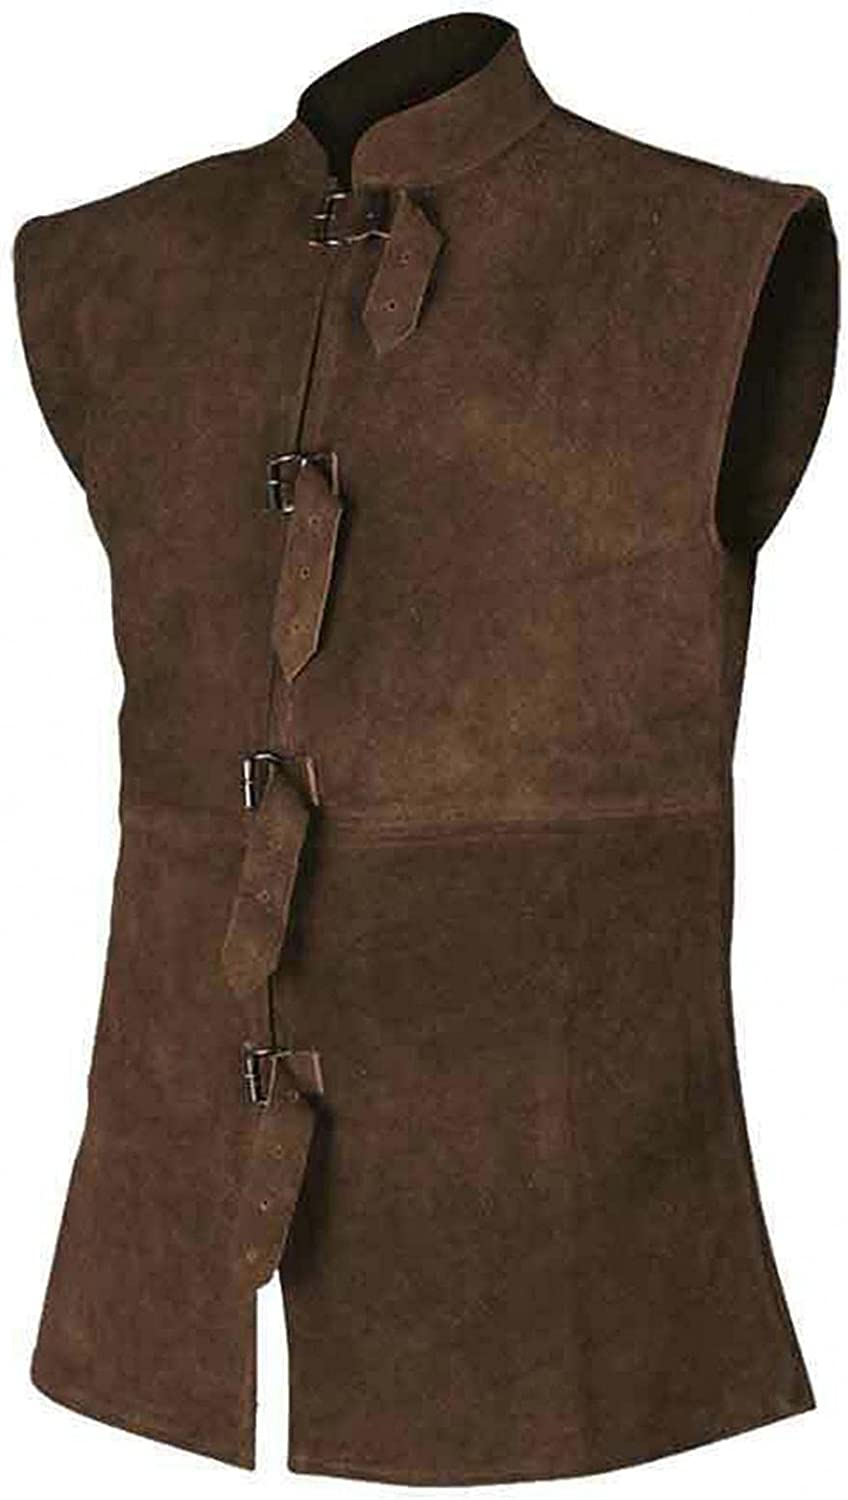 Burband Mens Many popular brands Leather Max 54% OFF Motorcycle Cafe Classic Vintage Vests